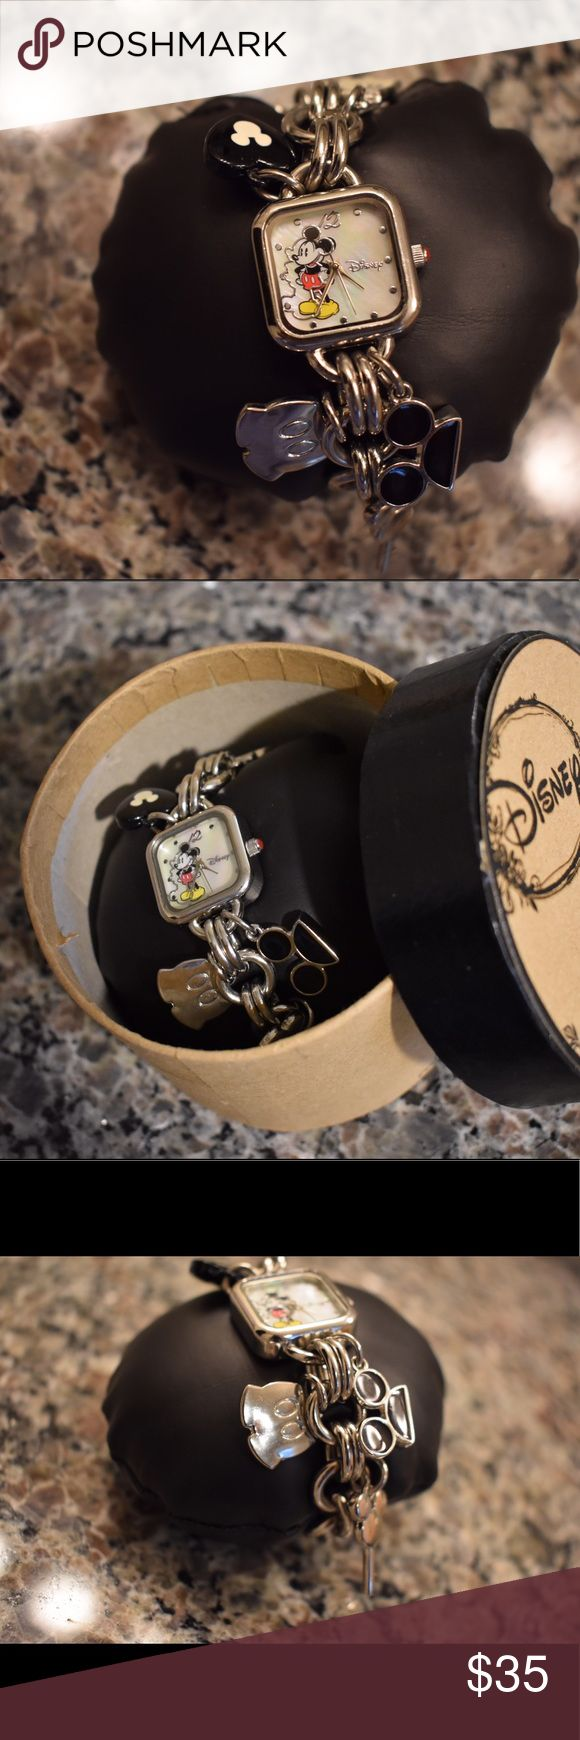 Disney square Mickey Mouse watch A cute and fun Mickey Mouse square silver watch with Mickey Mouse charms! It snaps shut! It is in brand new condition with all packaging and has only been worn a couple of times! Disney Jewelry Bracelets